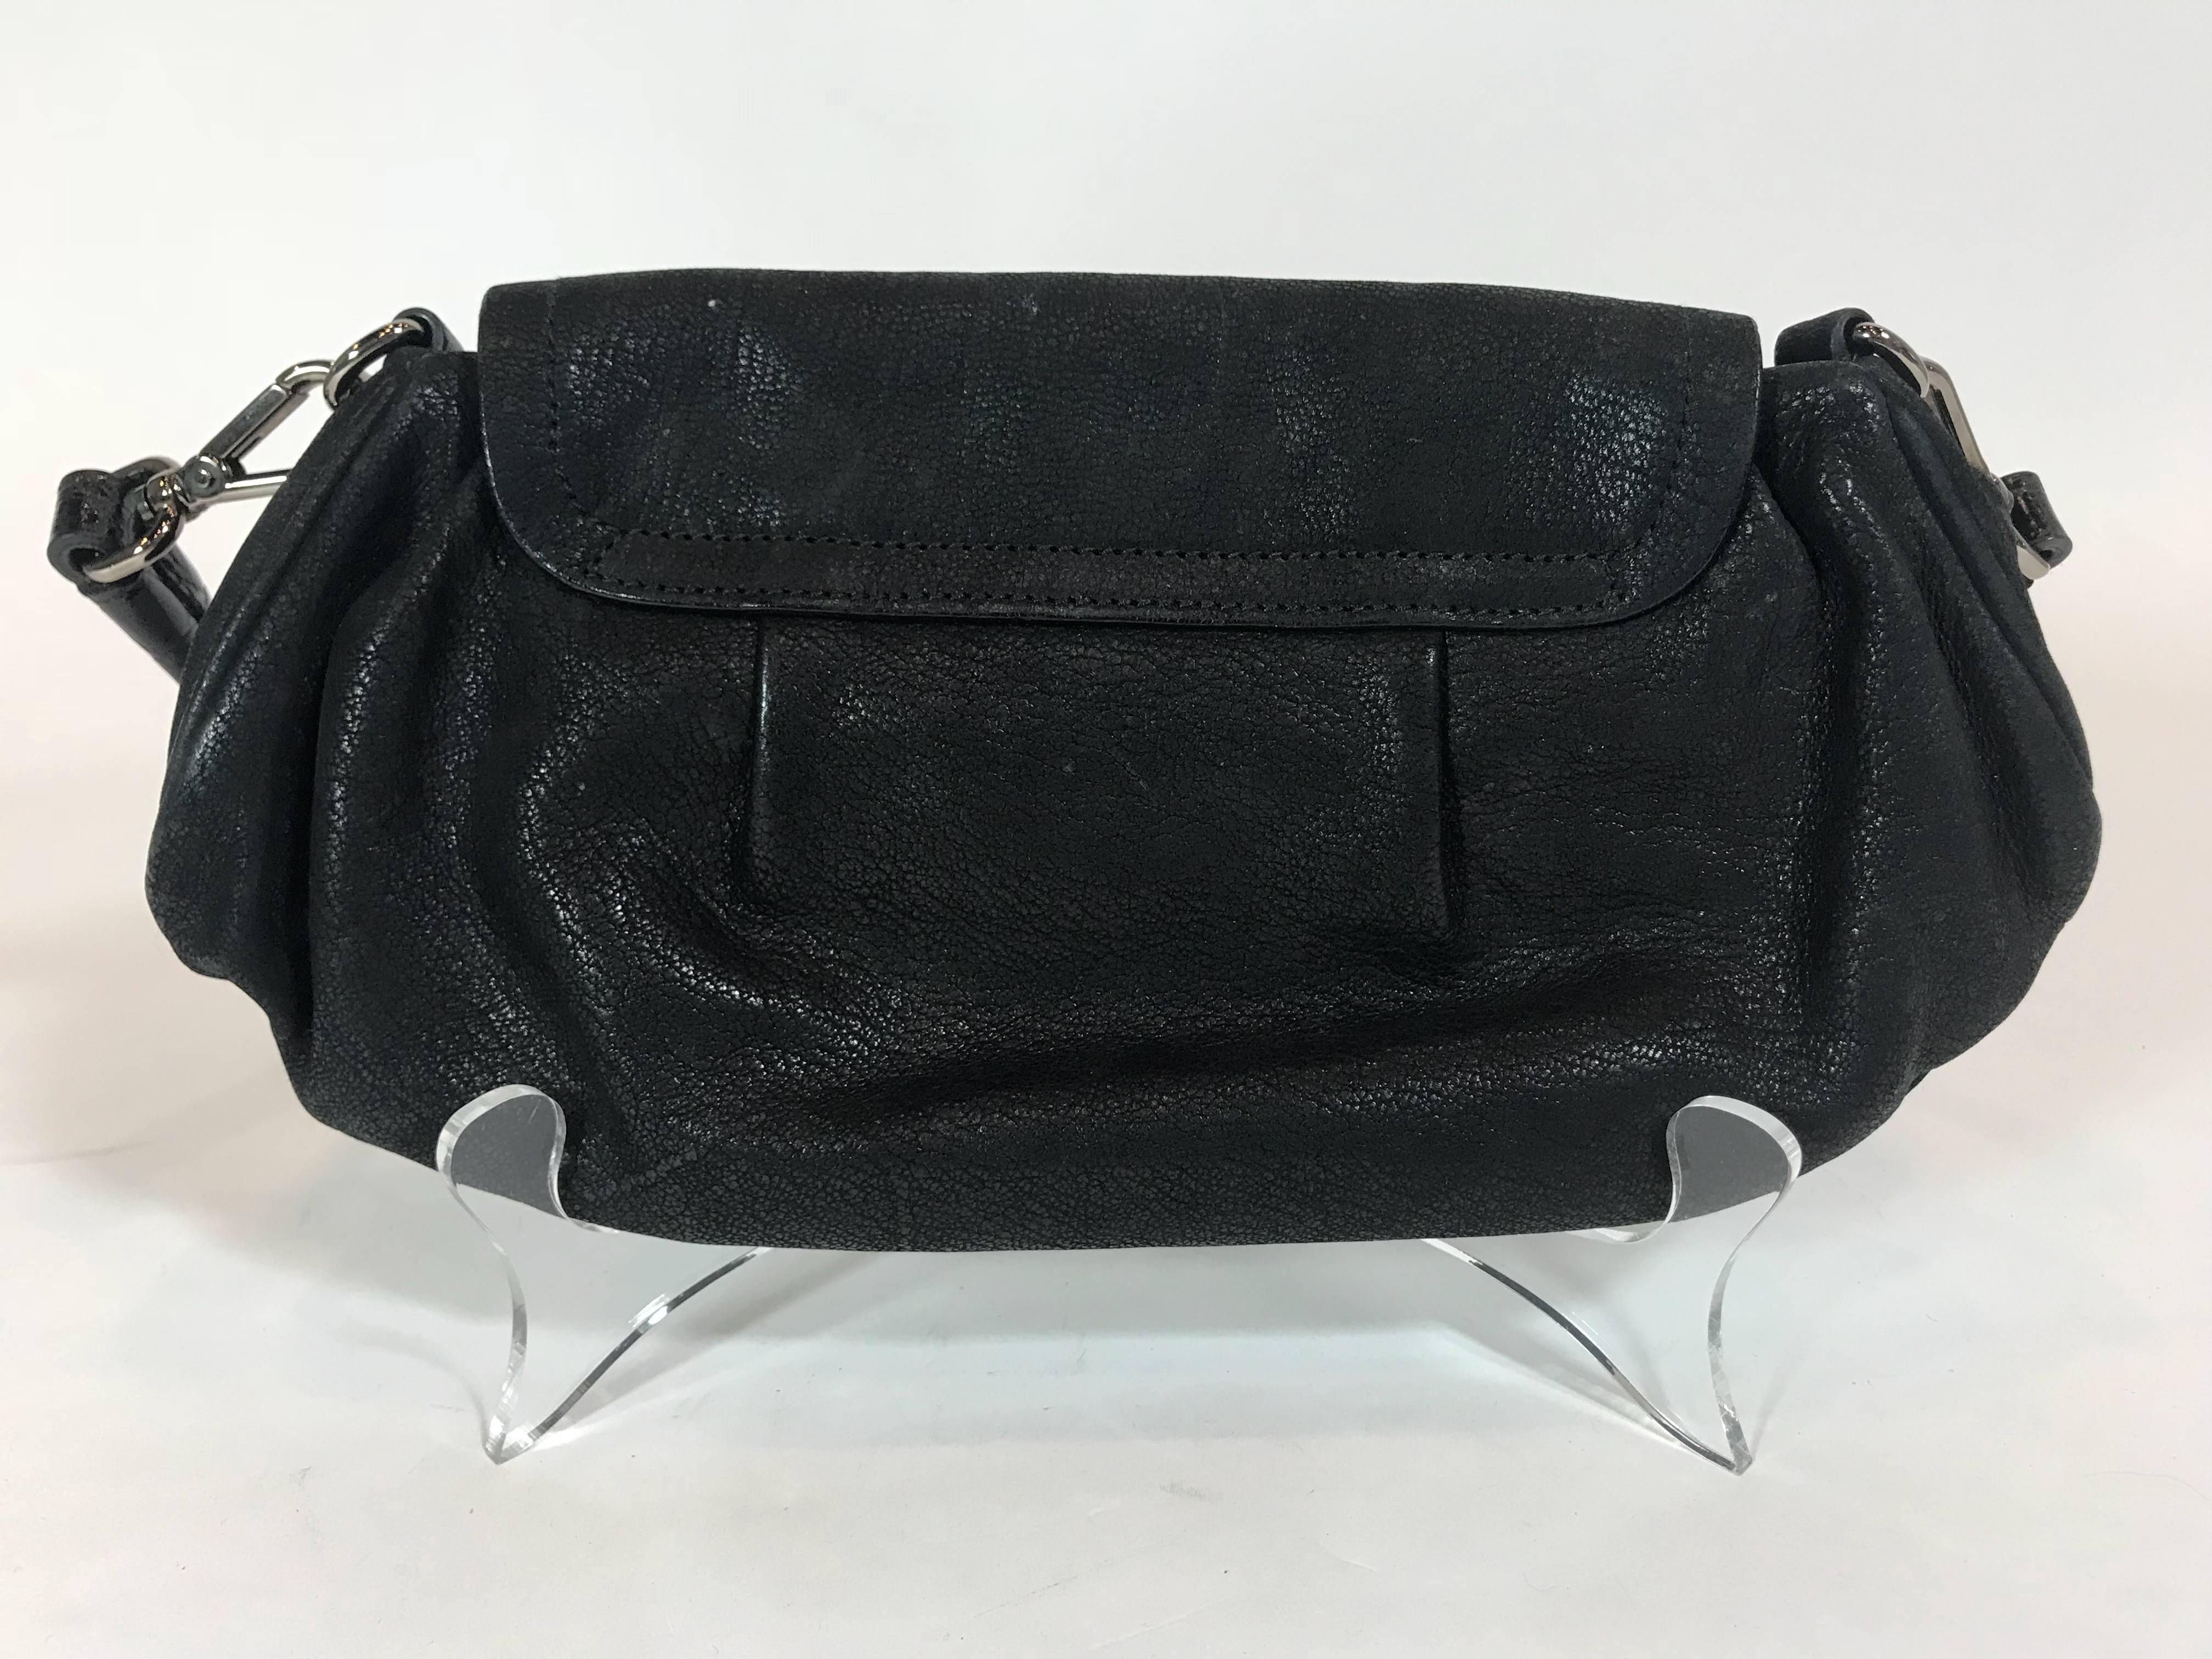 a1c73ac68154 purchase prada br4387 handbags in black 00320 9d929; sale prada skipper bag  in excellent condition for sale in roslyn ny 54ac0 067e7